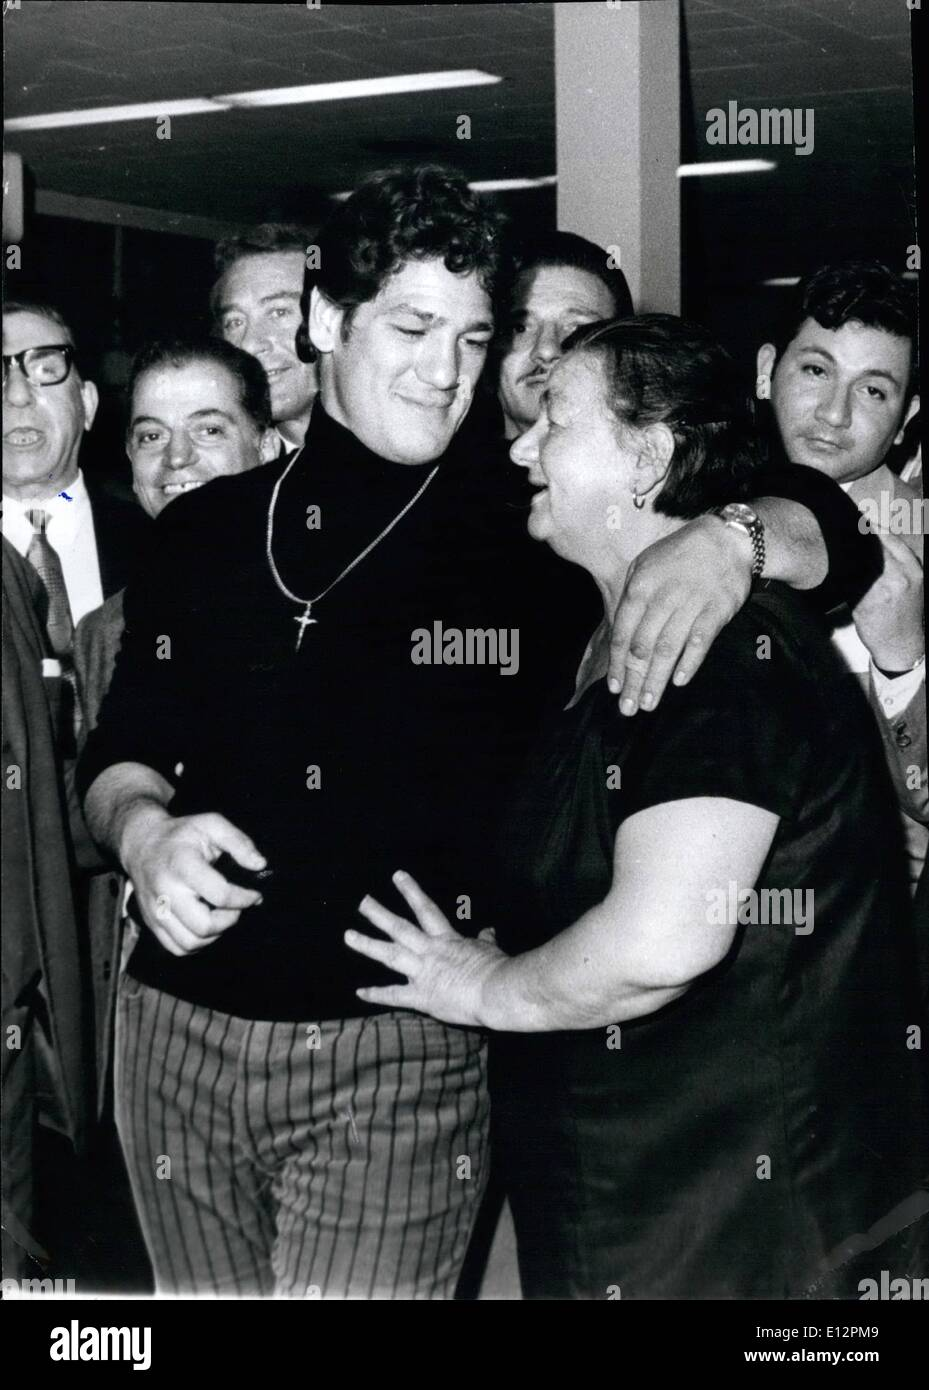 Feb. 24, 2012 - The tragic end of an Argentine Heavyweight Boxer in United States. Buenos Aires, May 25th 1976. This is Oscar Natalio Bonavena, one of the outstanding Argentine boxers in a recent picture showing him after returning from one of his matches and showing him with his mother always so proud on her son. And now all has finished due to the fact. Bonavena was assasinated near Reno, Nevada under gangster like circumstances. - Bonavena was the 7th ranking boxer in the world category. - Stock Image